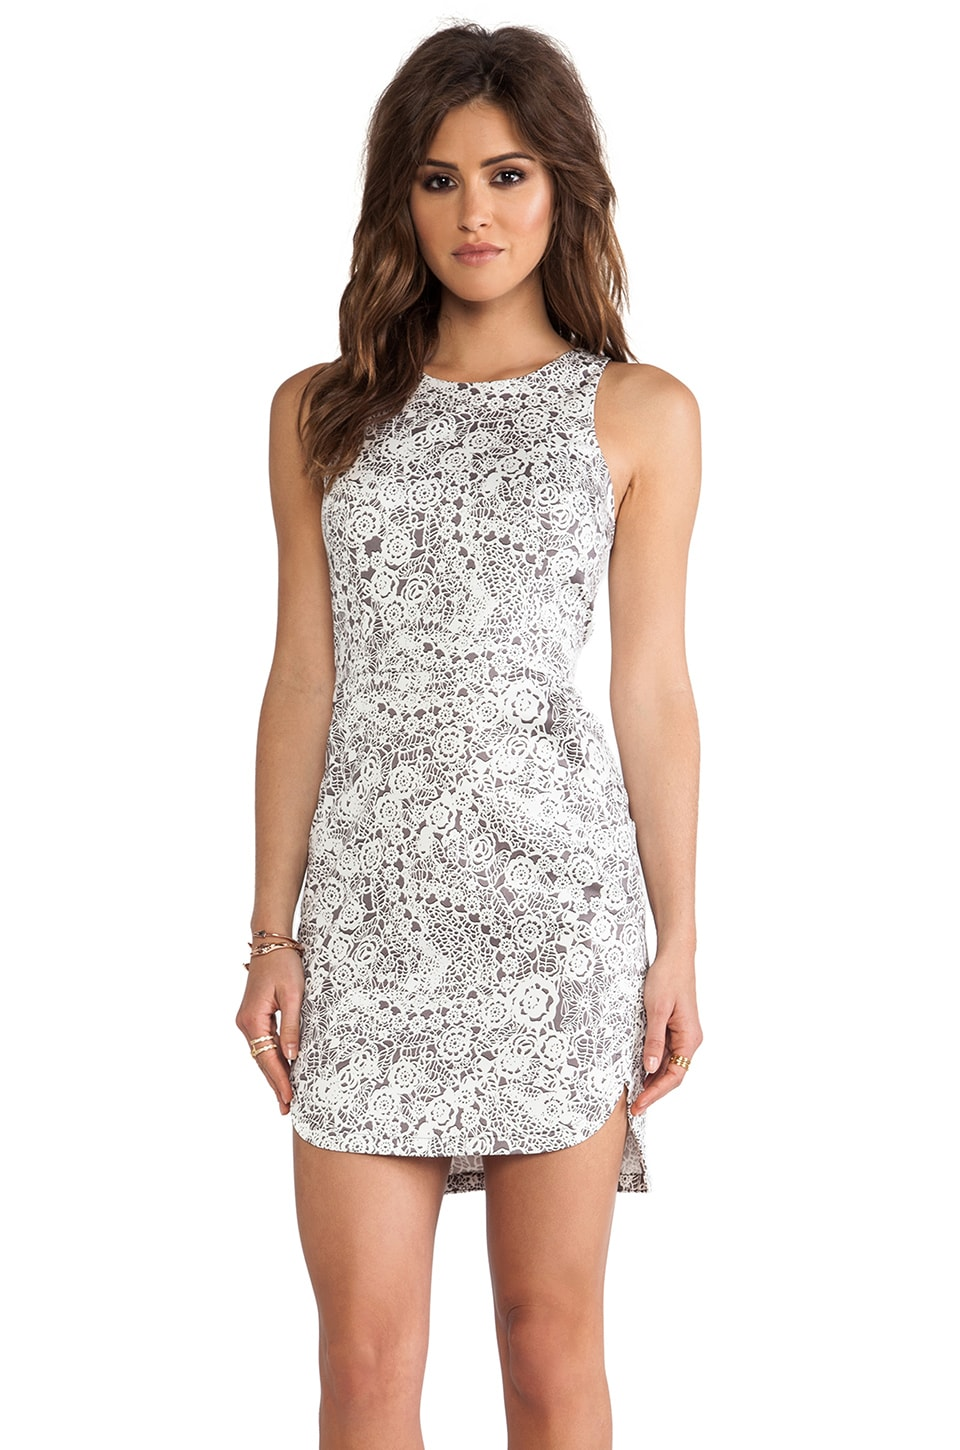 Talulah Sky Spirits Mini Dress in Lace Print